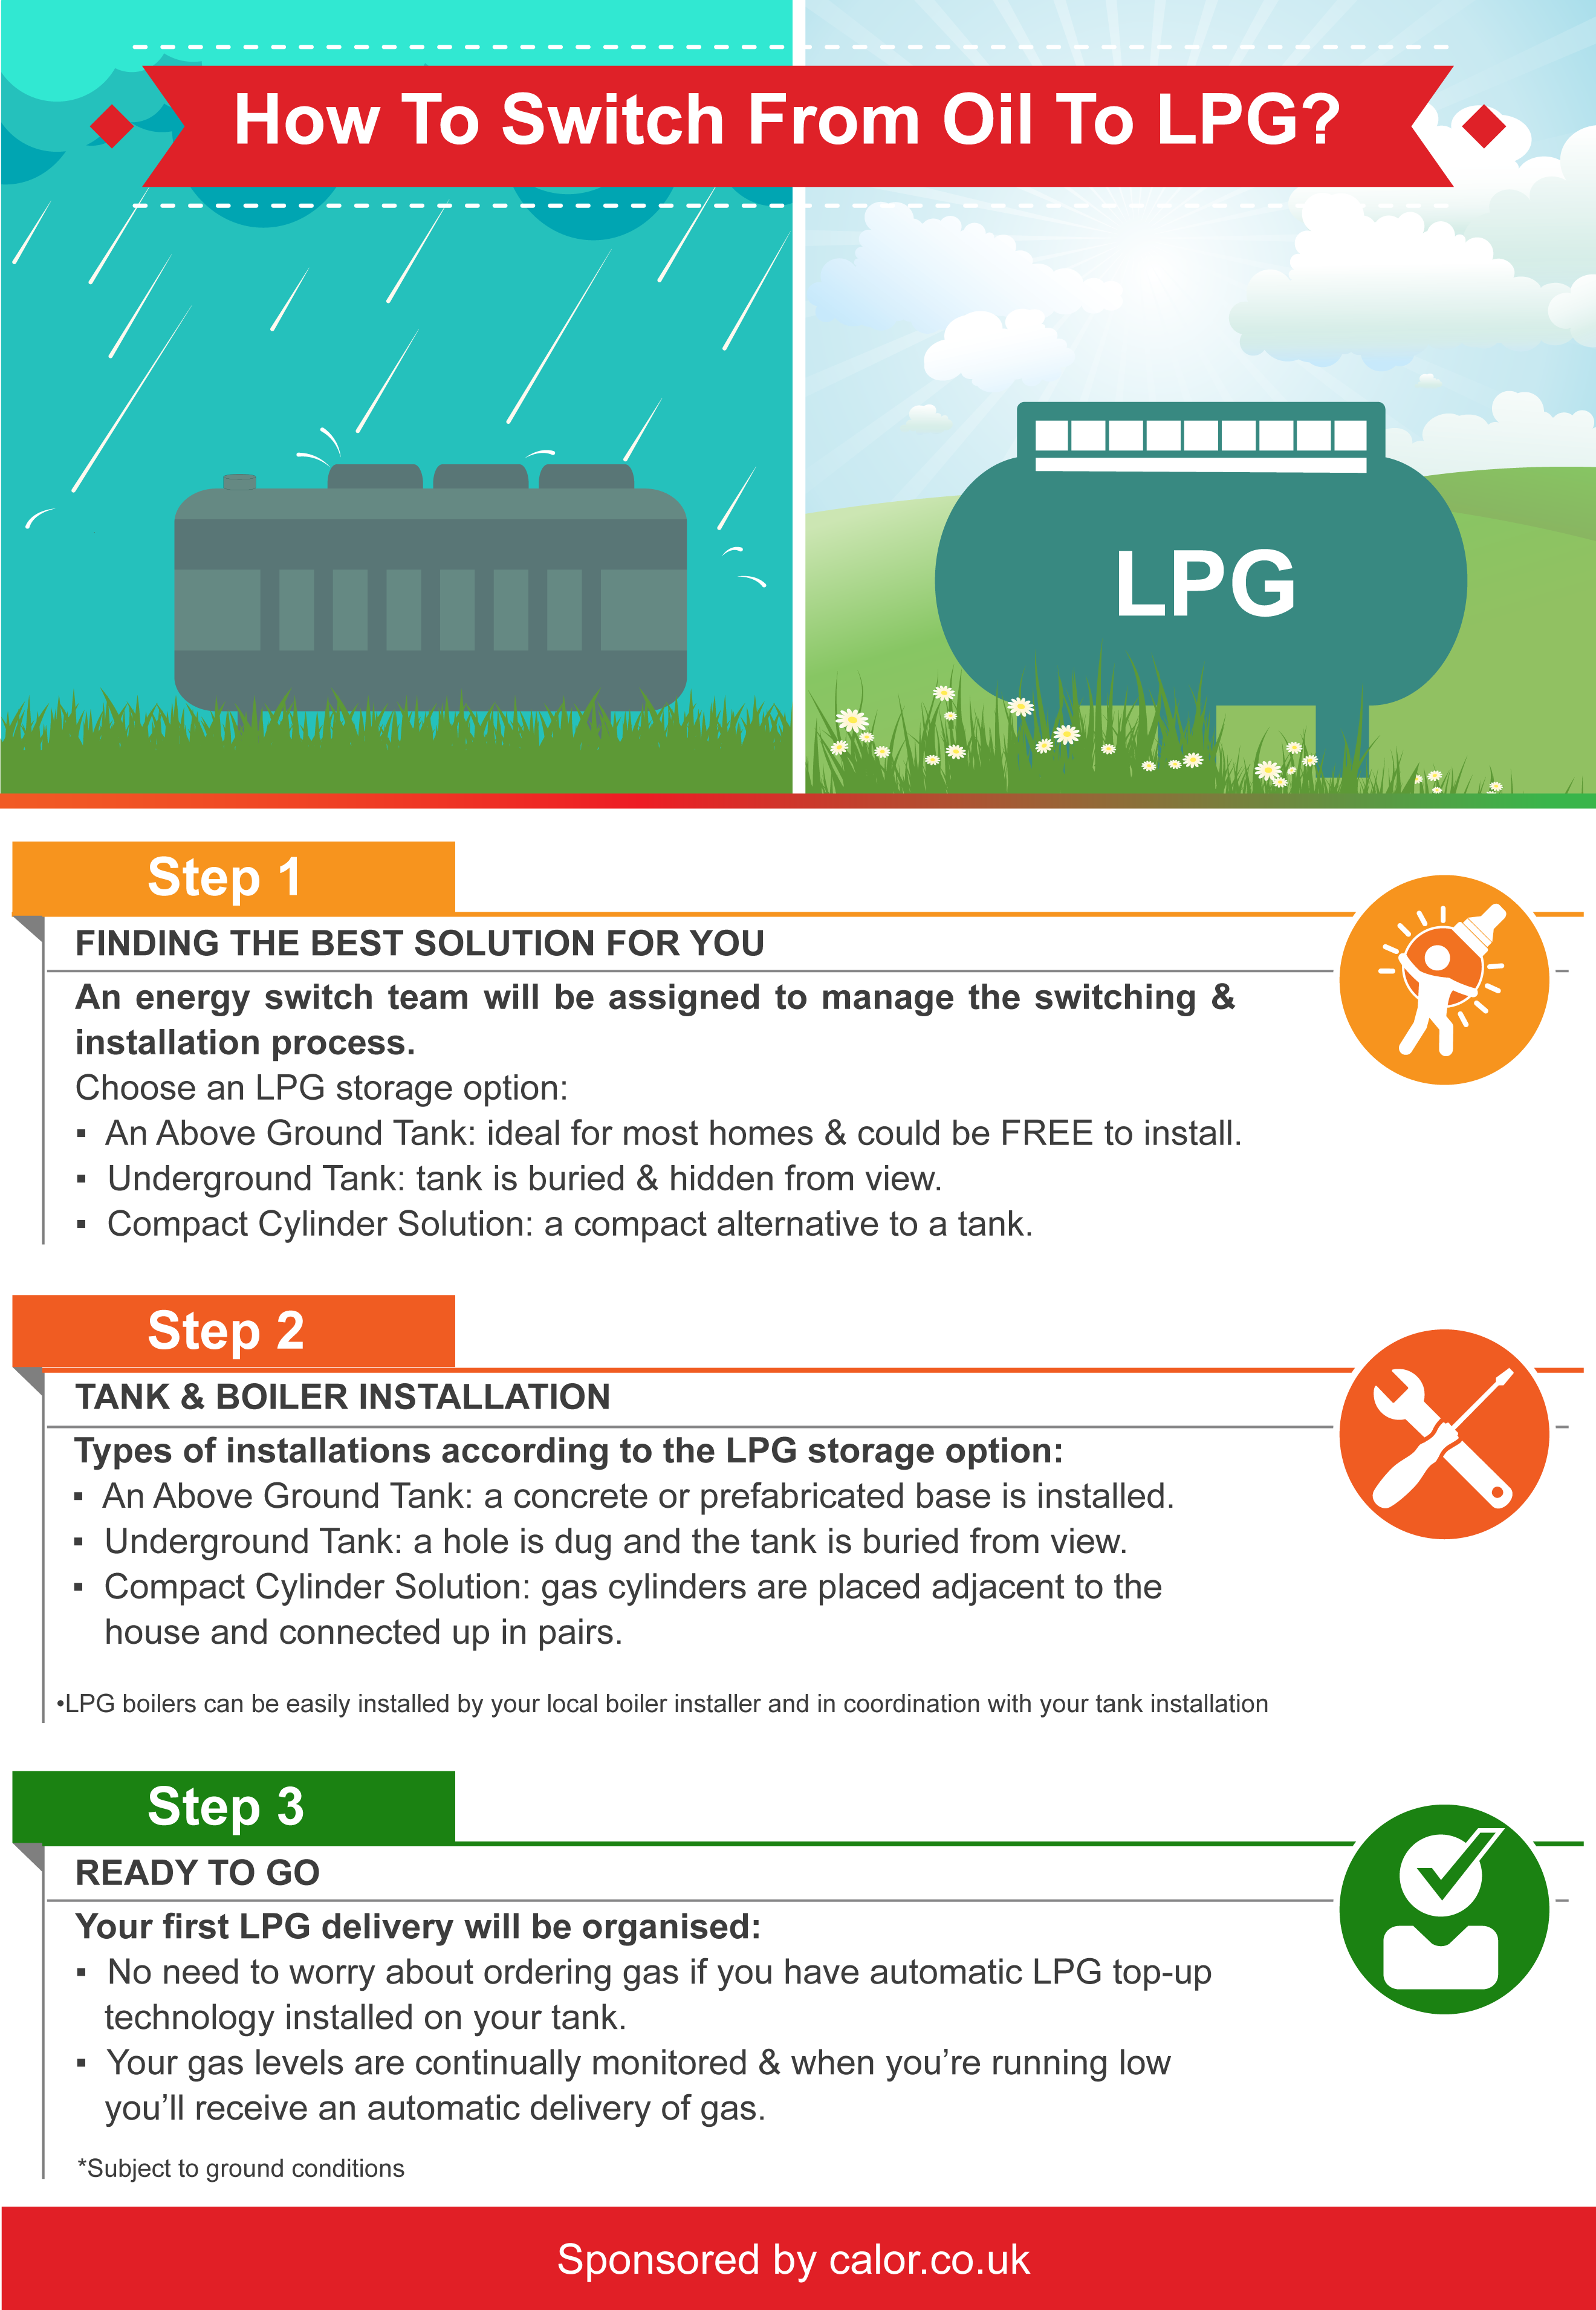 How to Switch from Oil to LPG infographic